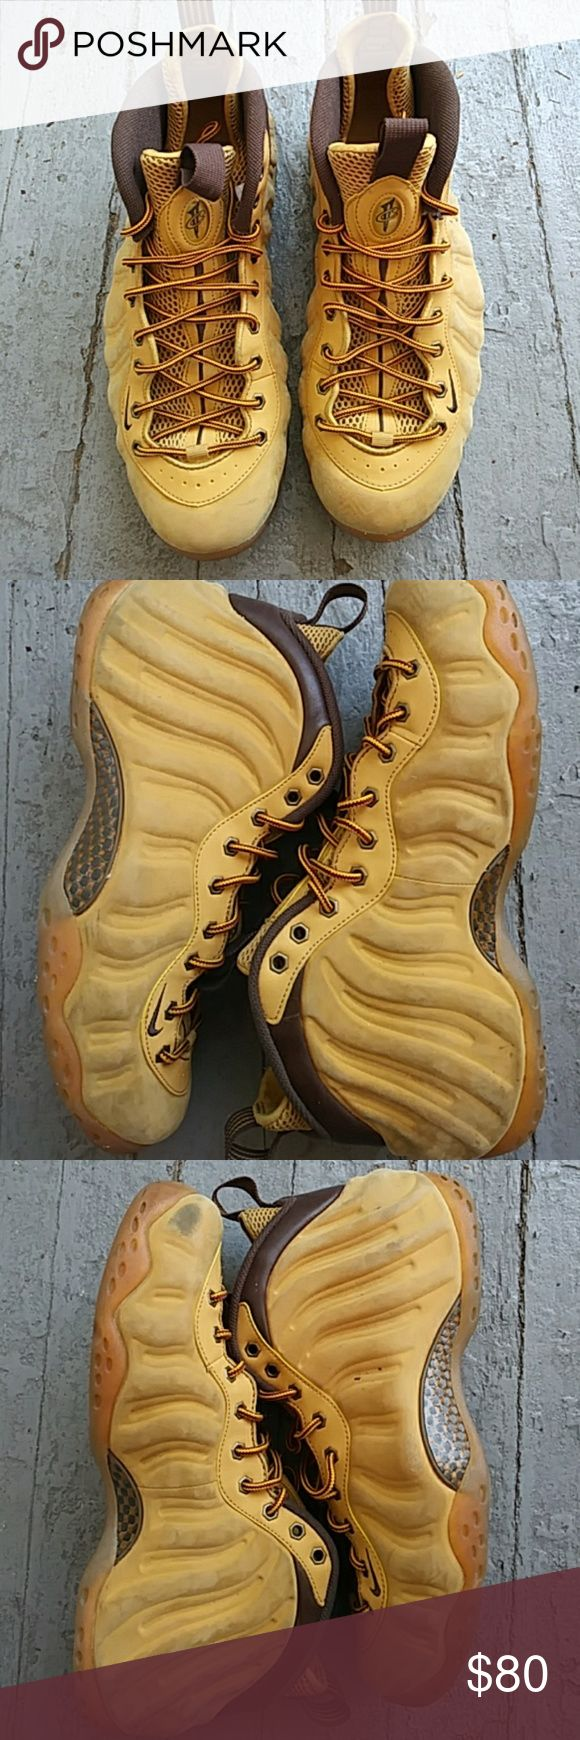 Foam Posites One Premium Wheat Swede, brown and butter shoe and laces, tan gum bottoms. Worn but in easy repairable shape. Nike Shoes Sneakers